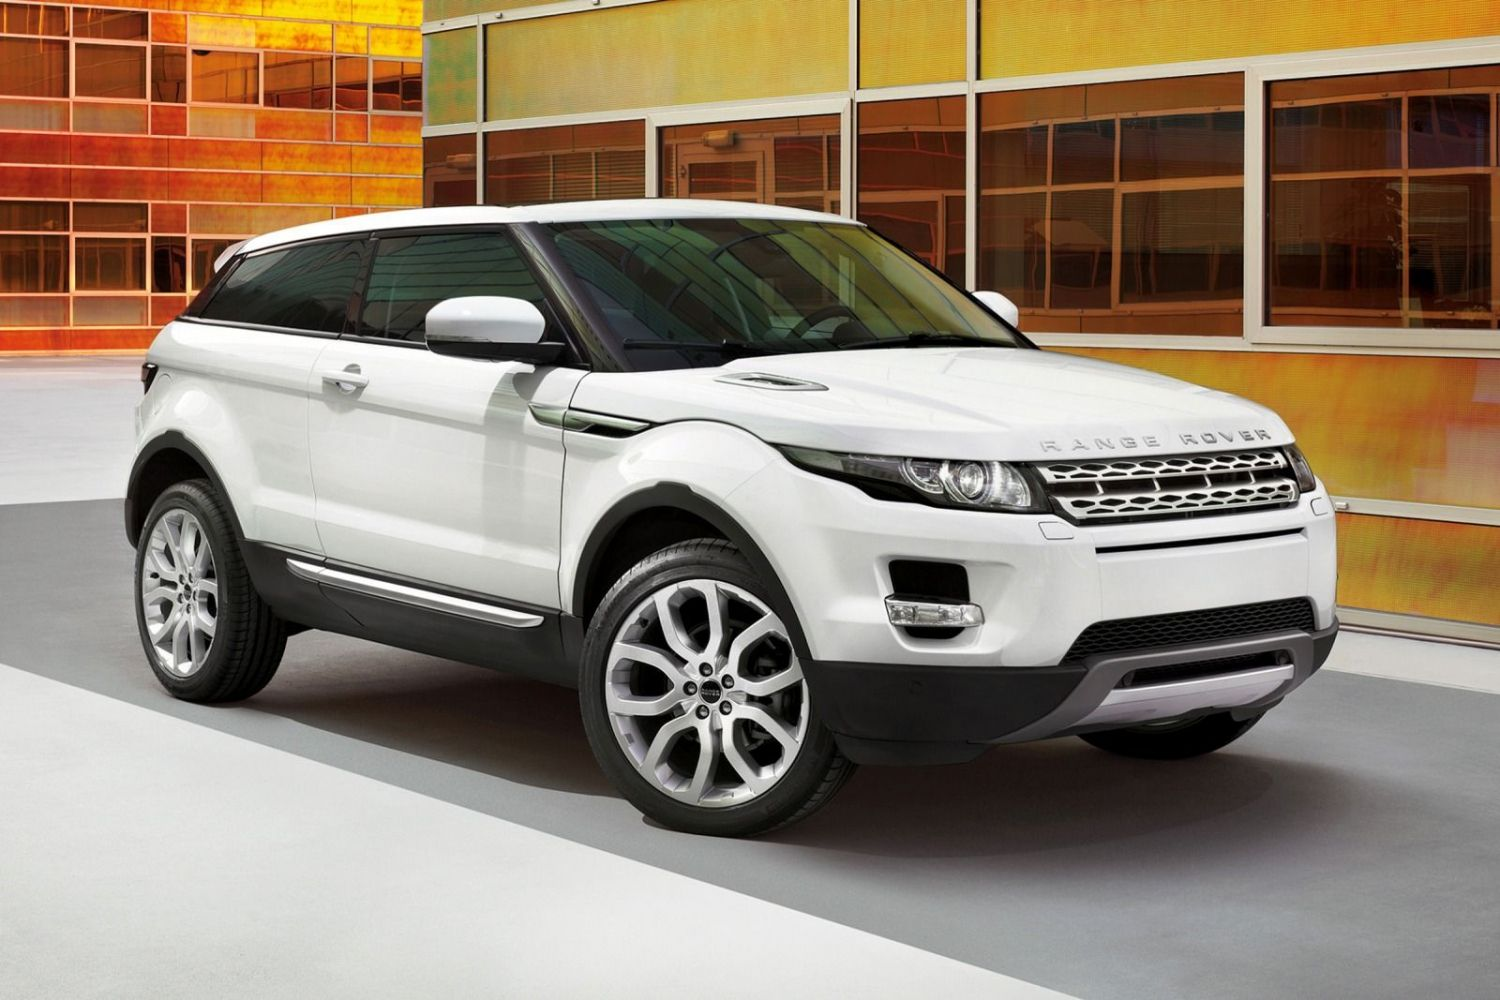 Range Rover Small Suv Best Luxury Check More At Http